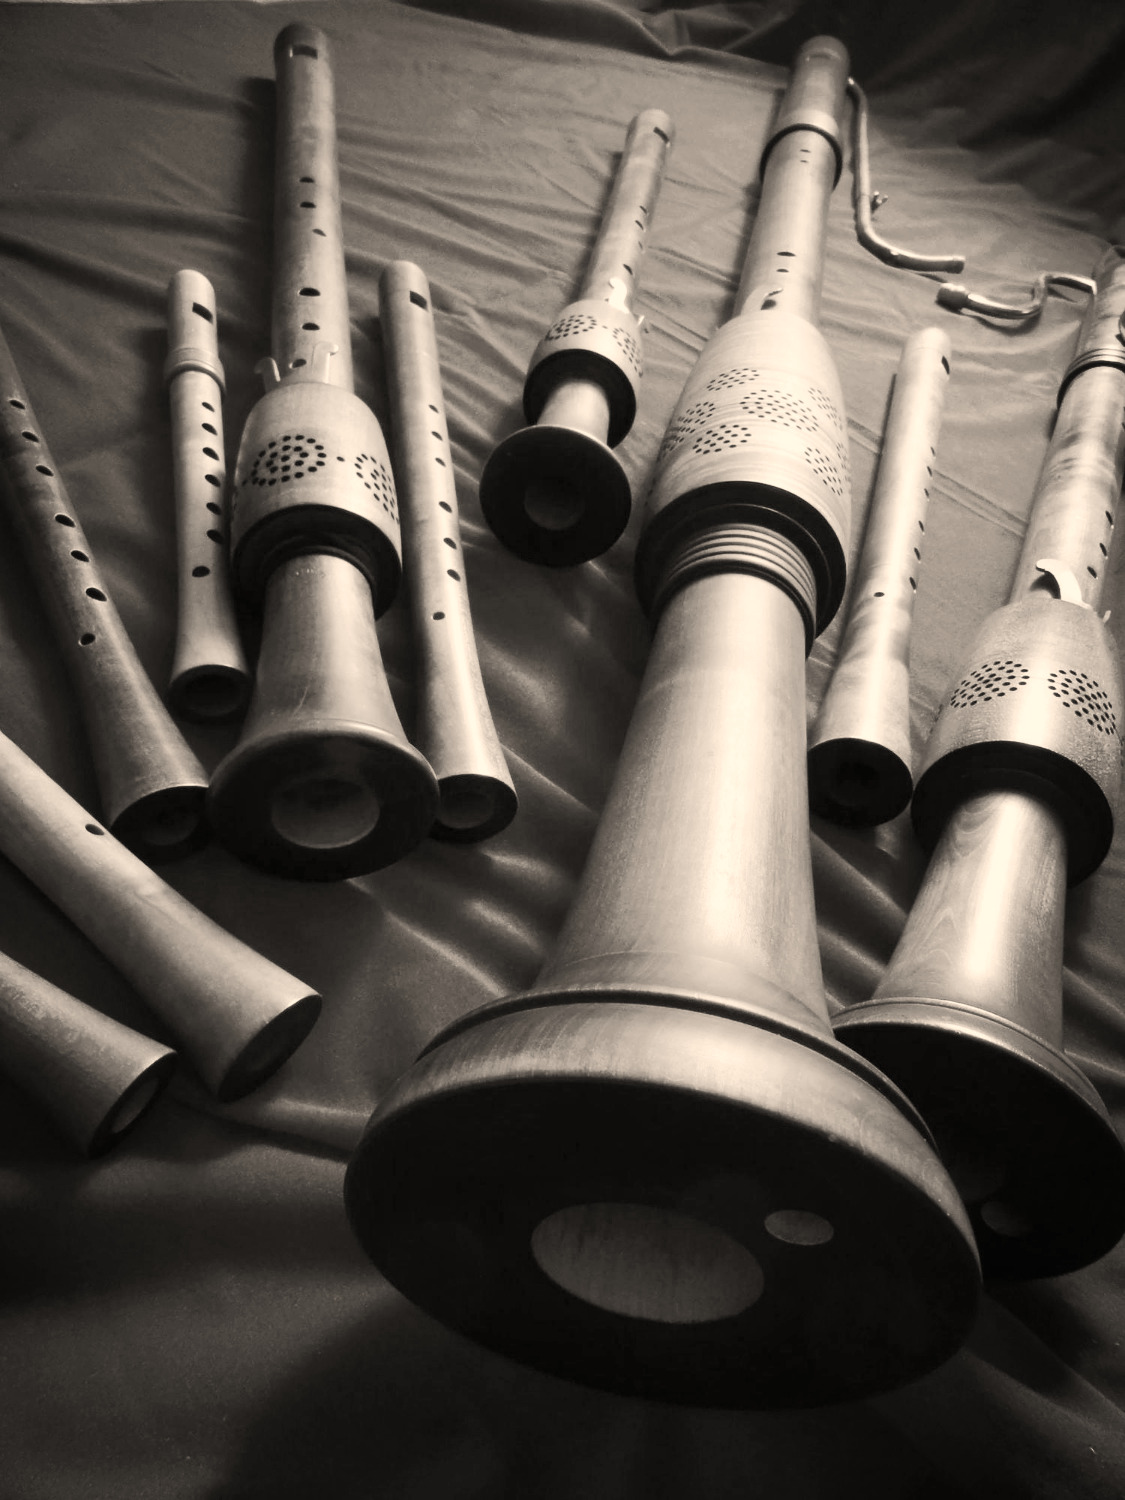 Recorder collection